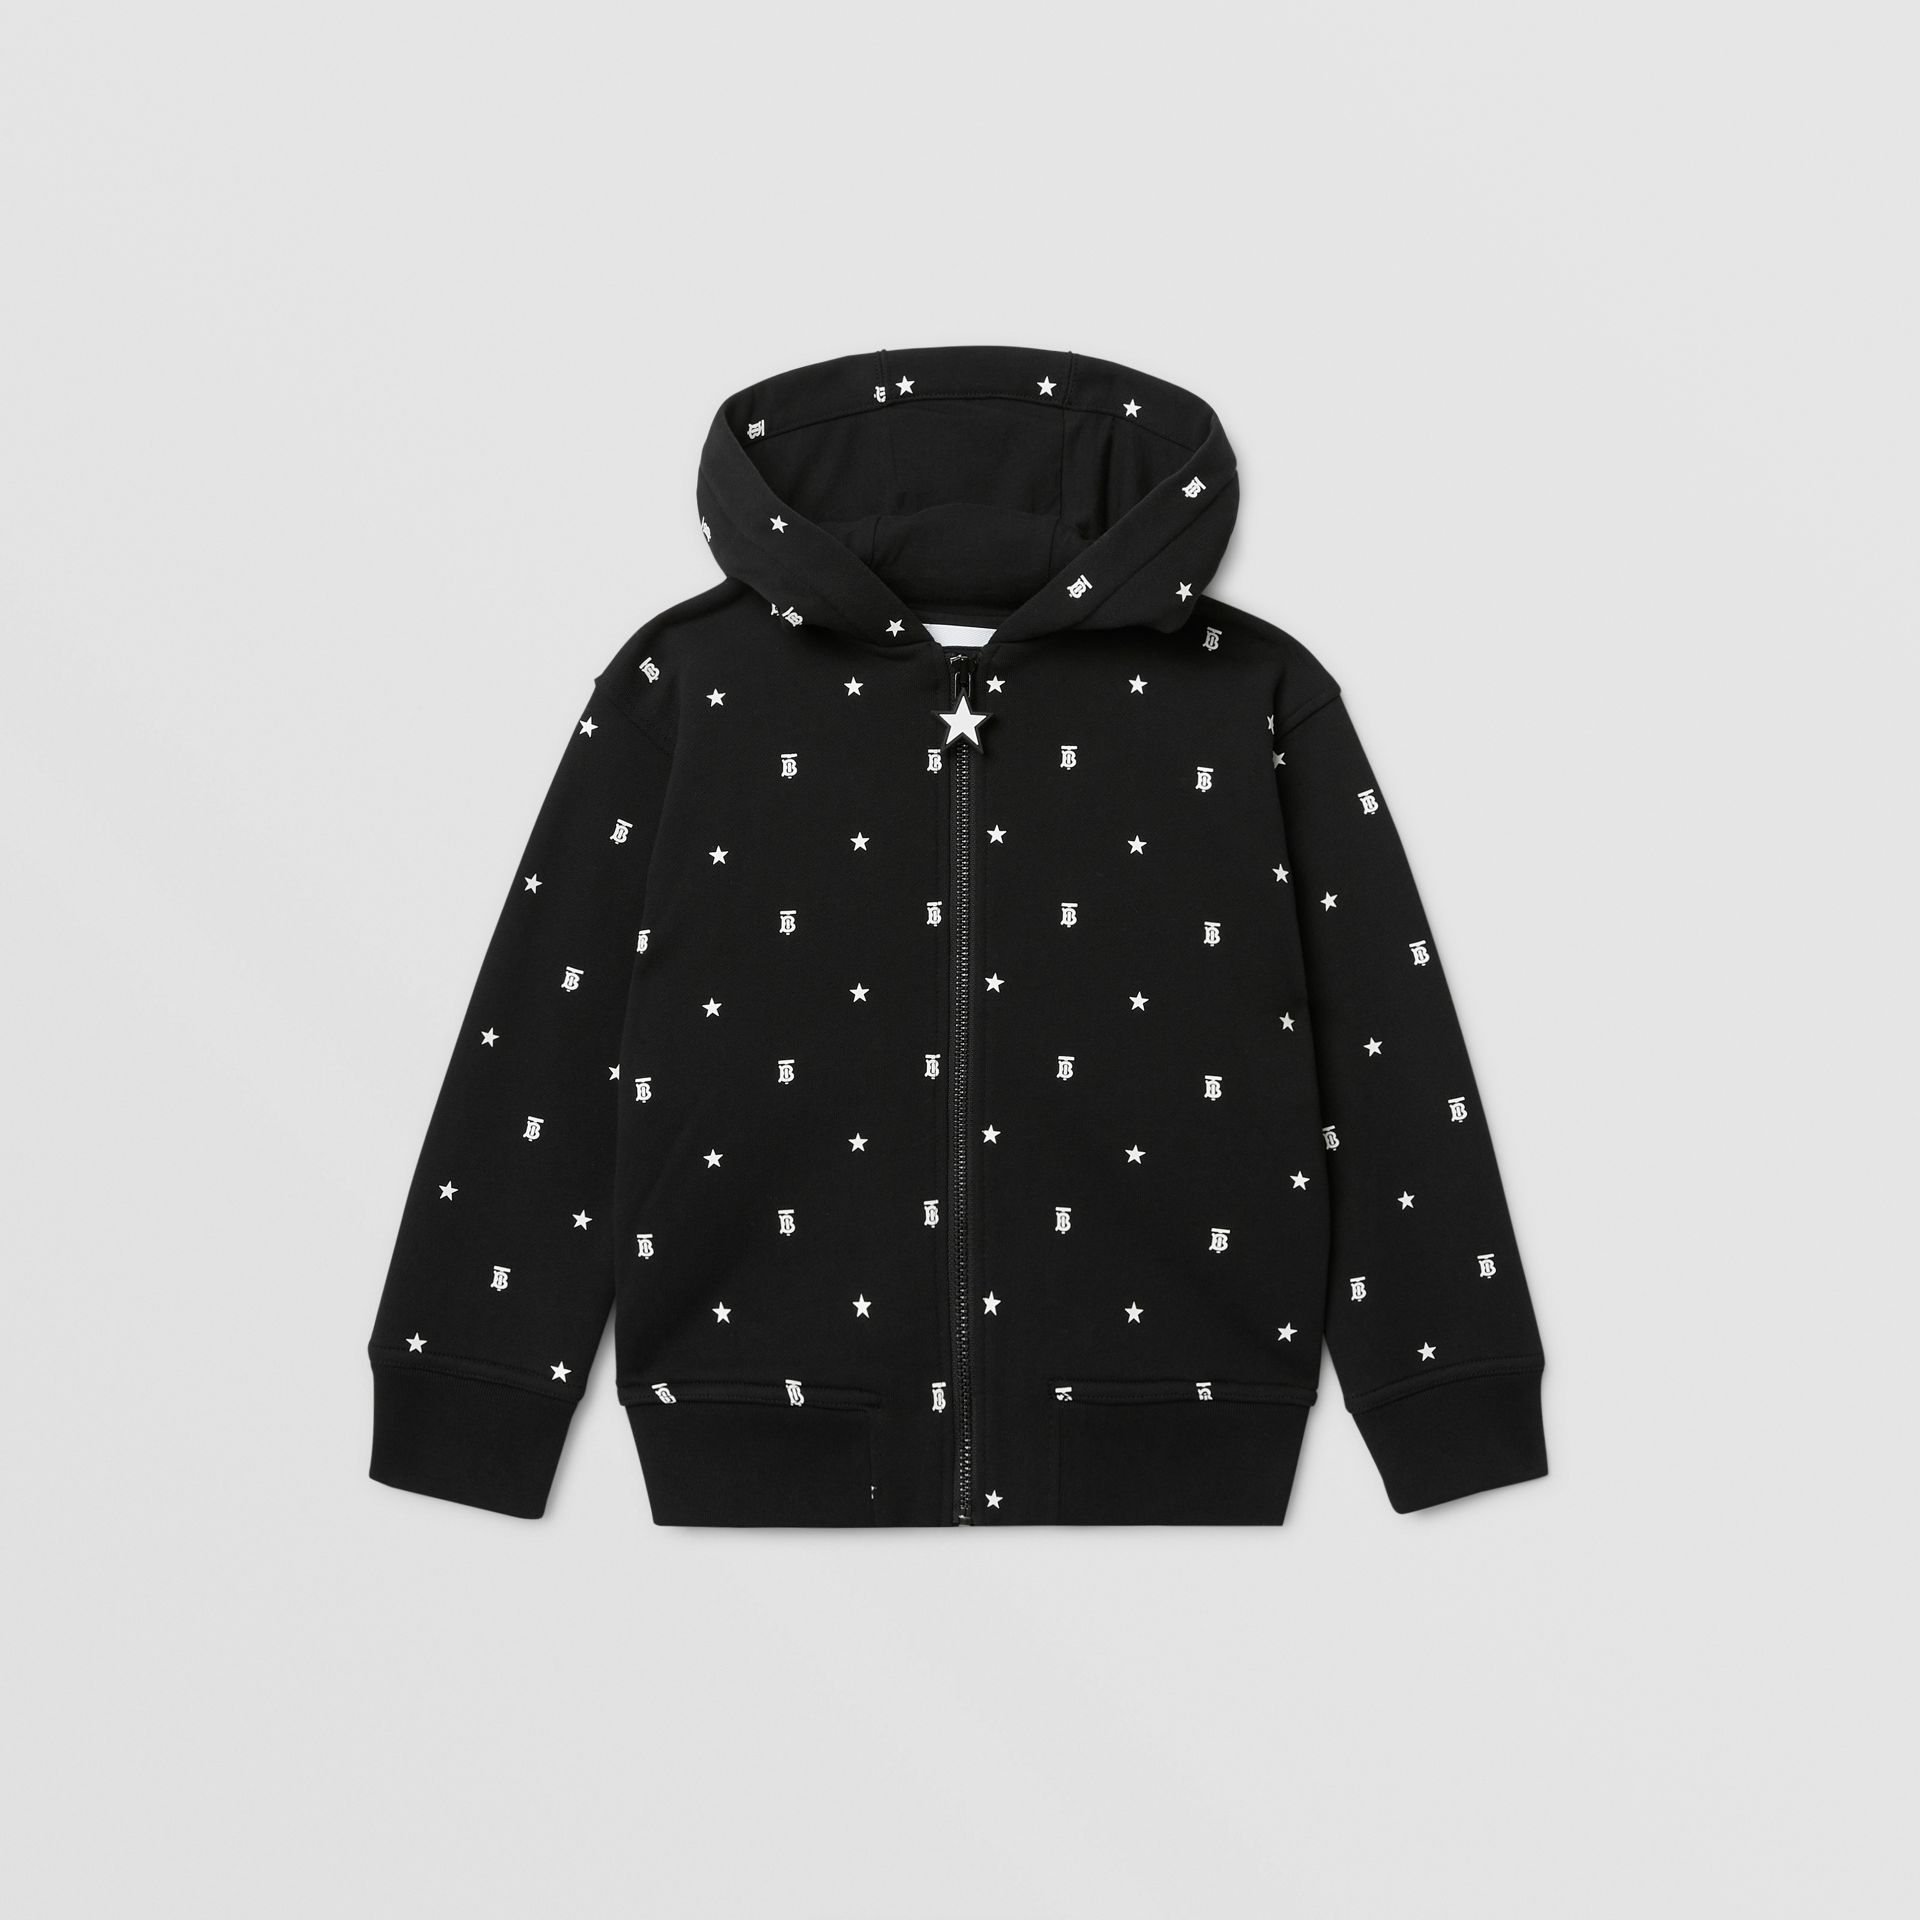 Star and Monogram Motif Cotton Hooded Top in Black | Burberry - gallery image 0